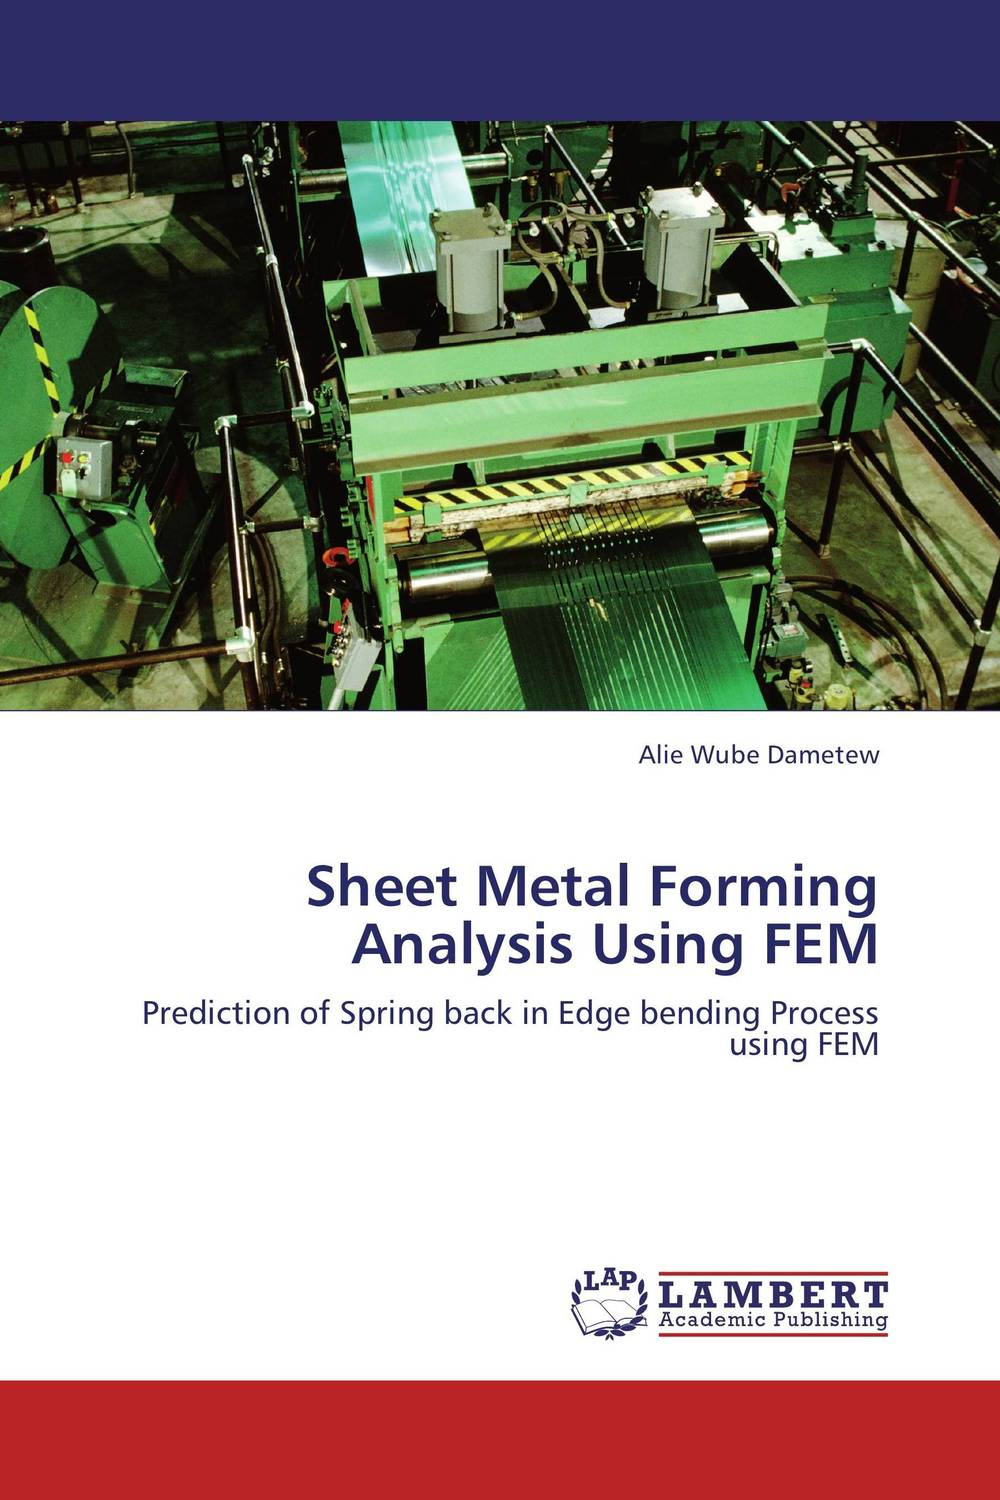 Sheet Metal Forming Analysis Using FEM development of sheet metal dies